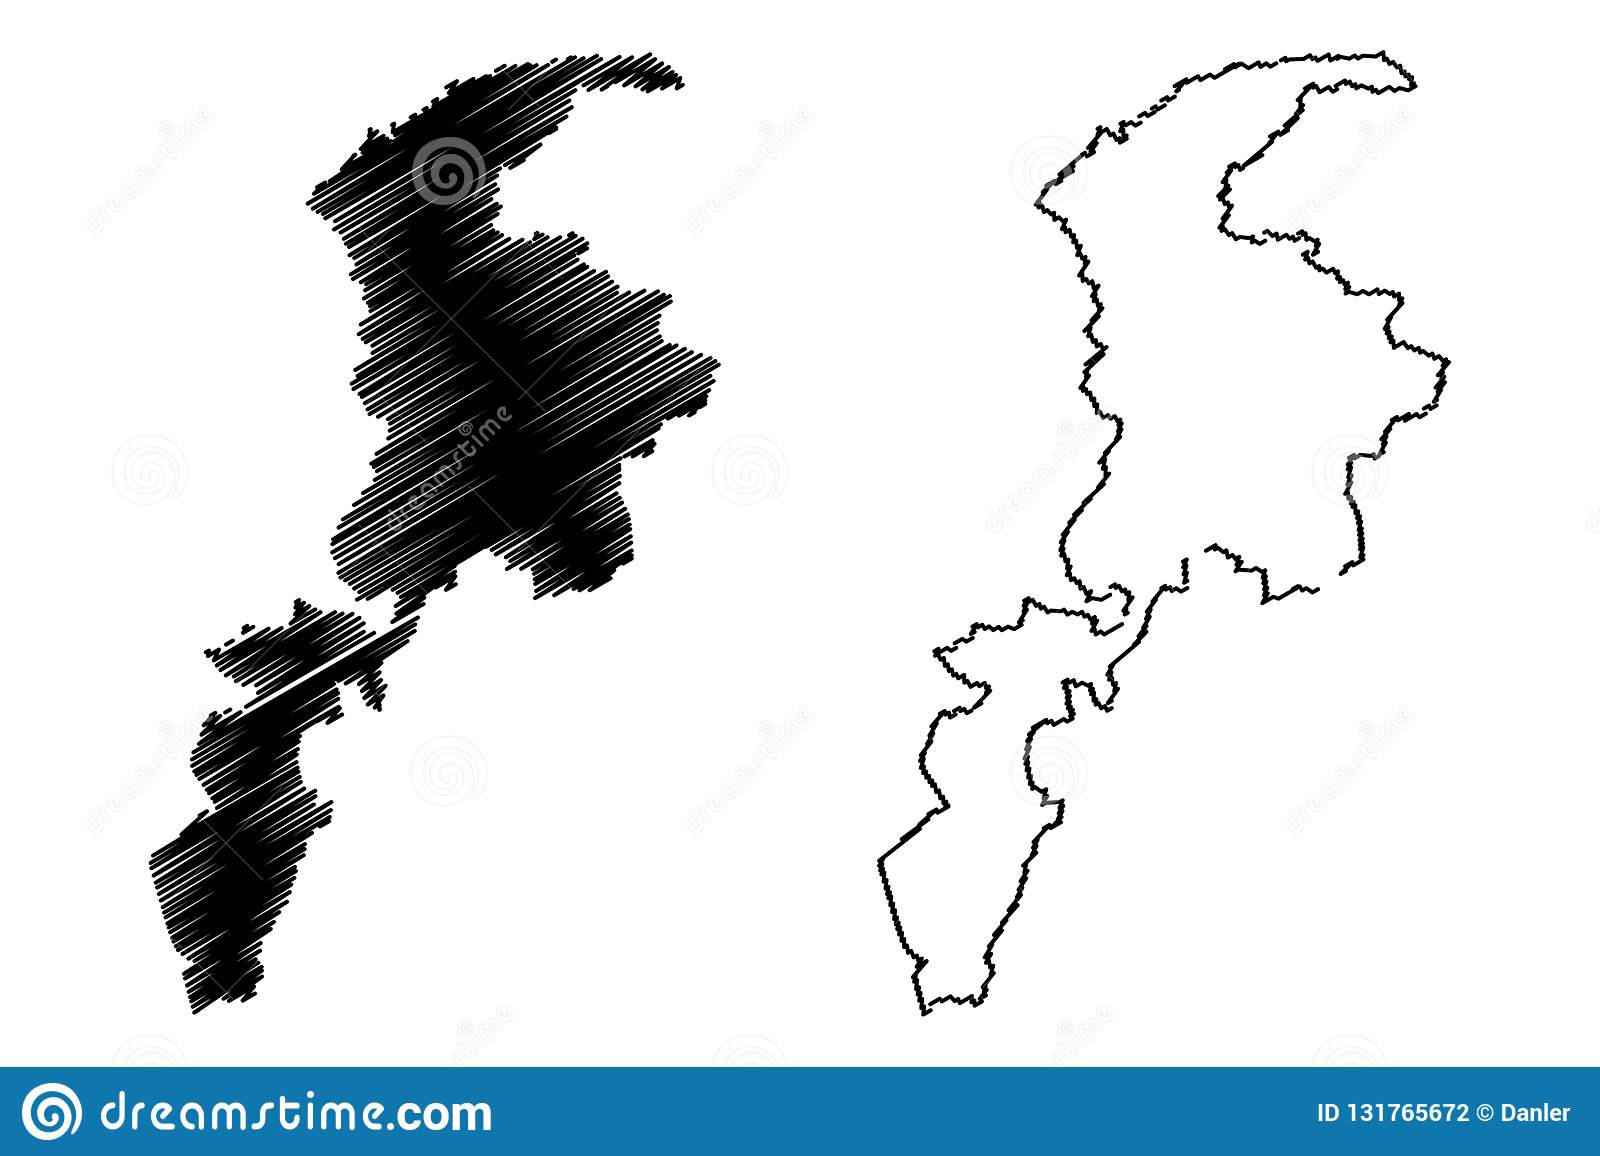 Khyber Pakhtunkhwa Map Vector Stock Vector - Illustration of drawing on kyber pass map, pangea map, mystara map, sargodha map, immoren map, bajaur agency map, bactria map, pakistani taliban map, afghan map, narowal map, blarney stone map, karbala map, pakistan map,